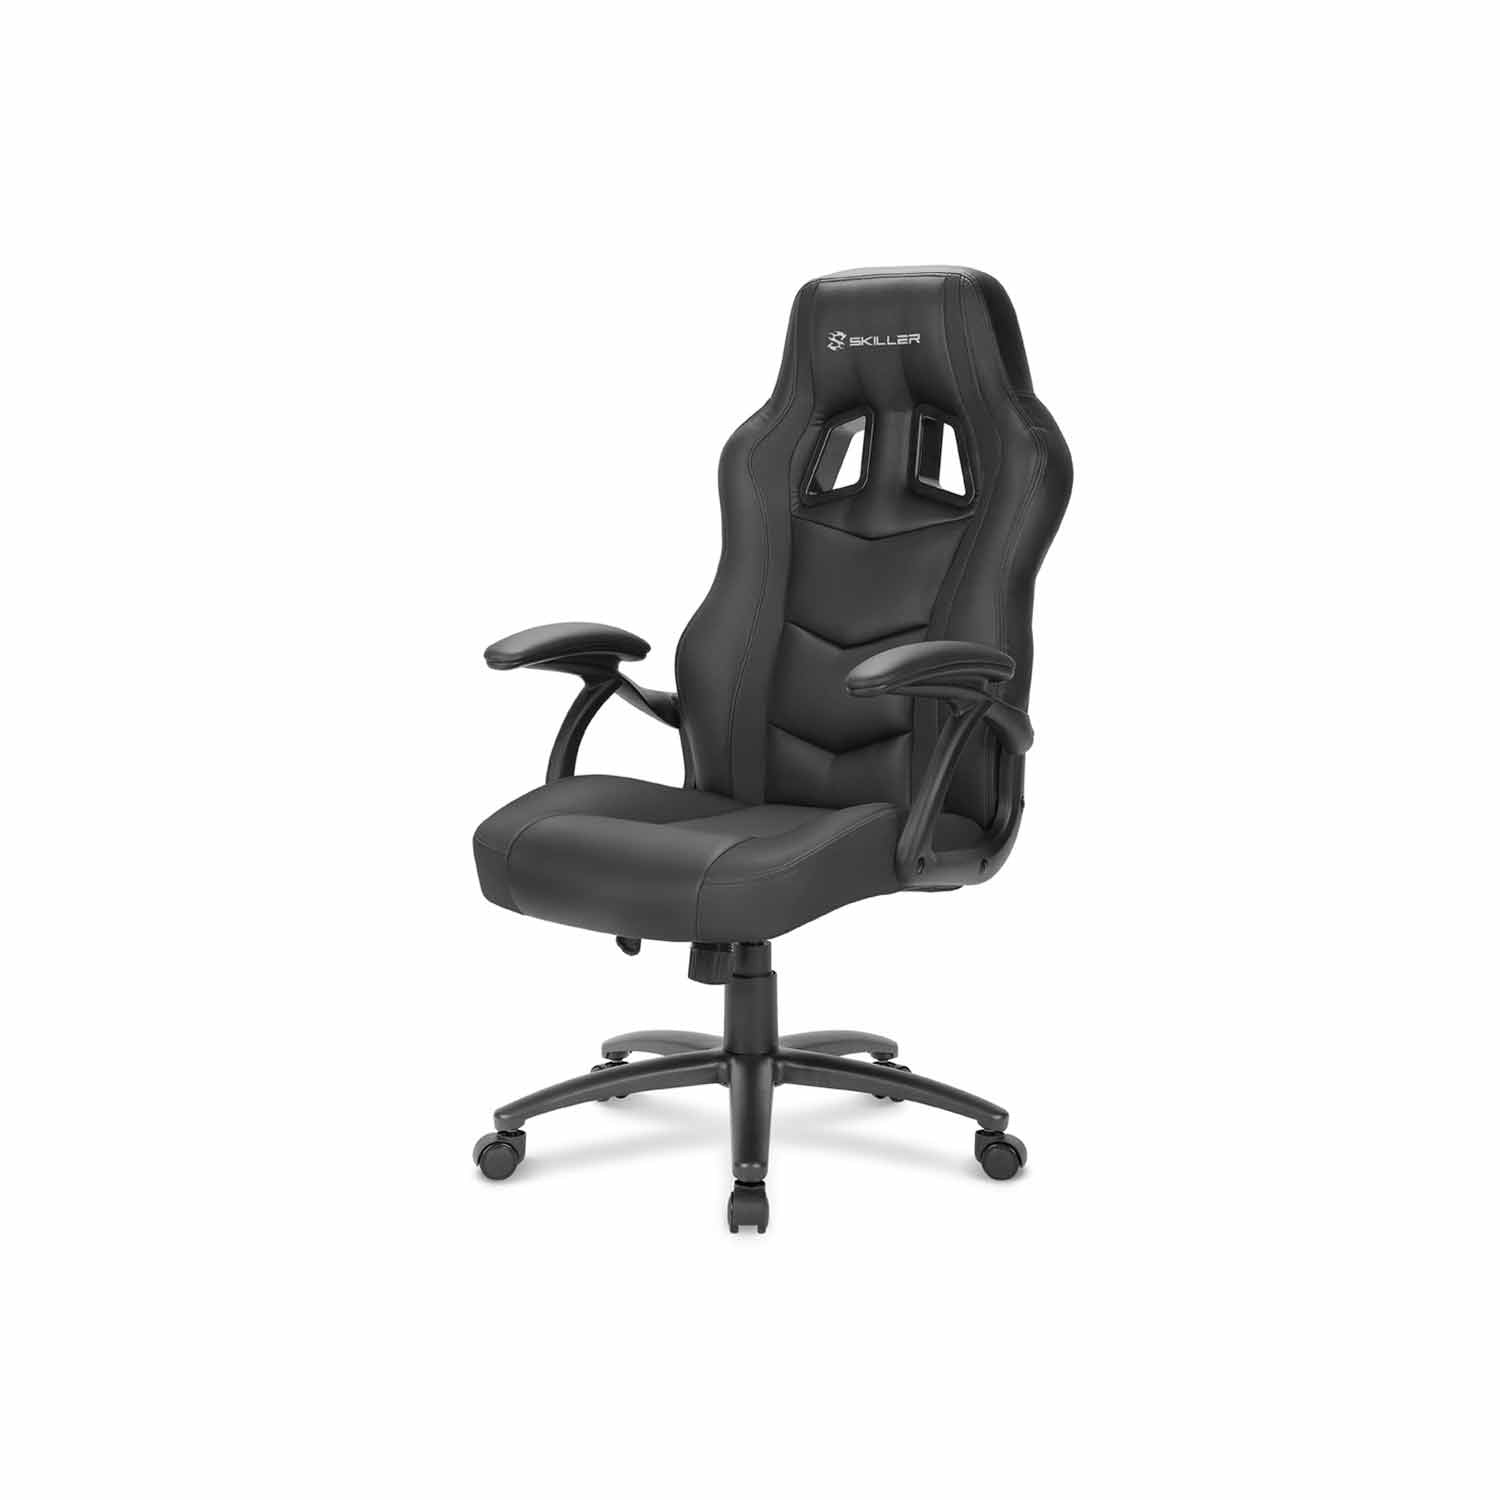 Sharkoon Skiller SGS1 Gaming Chair